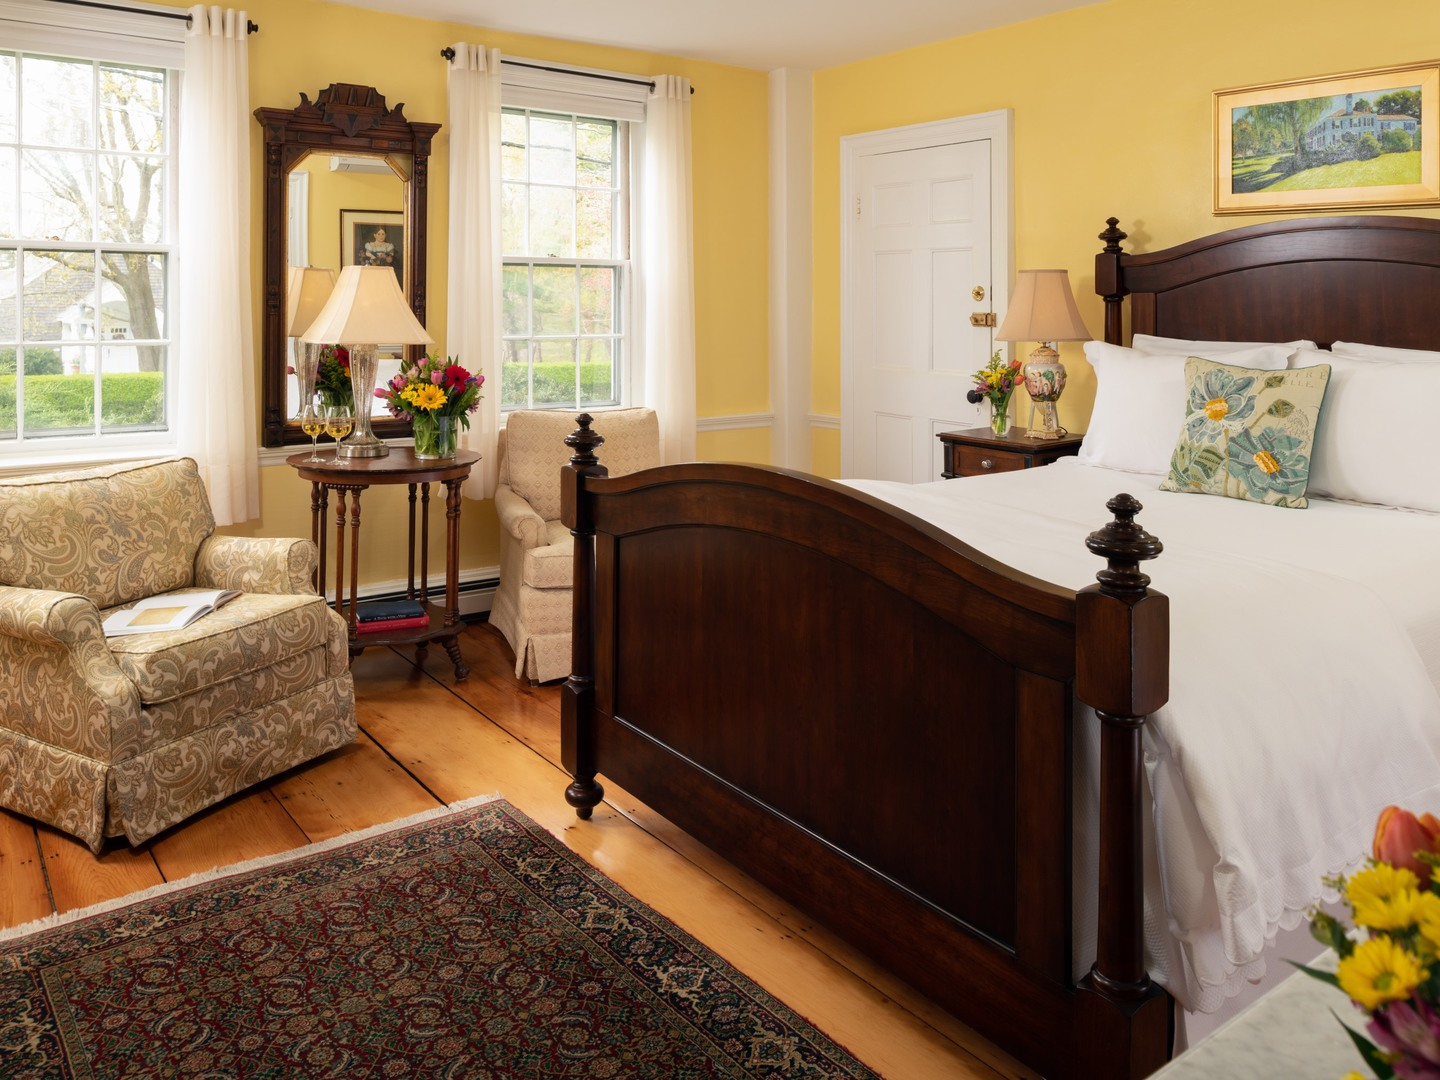 A living room filled with furniture and a large window at Candleberry Inn on Cape Cod.